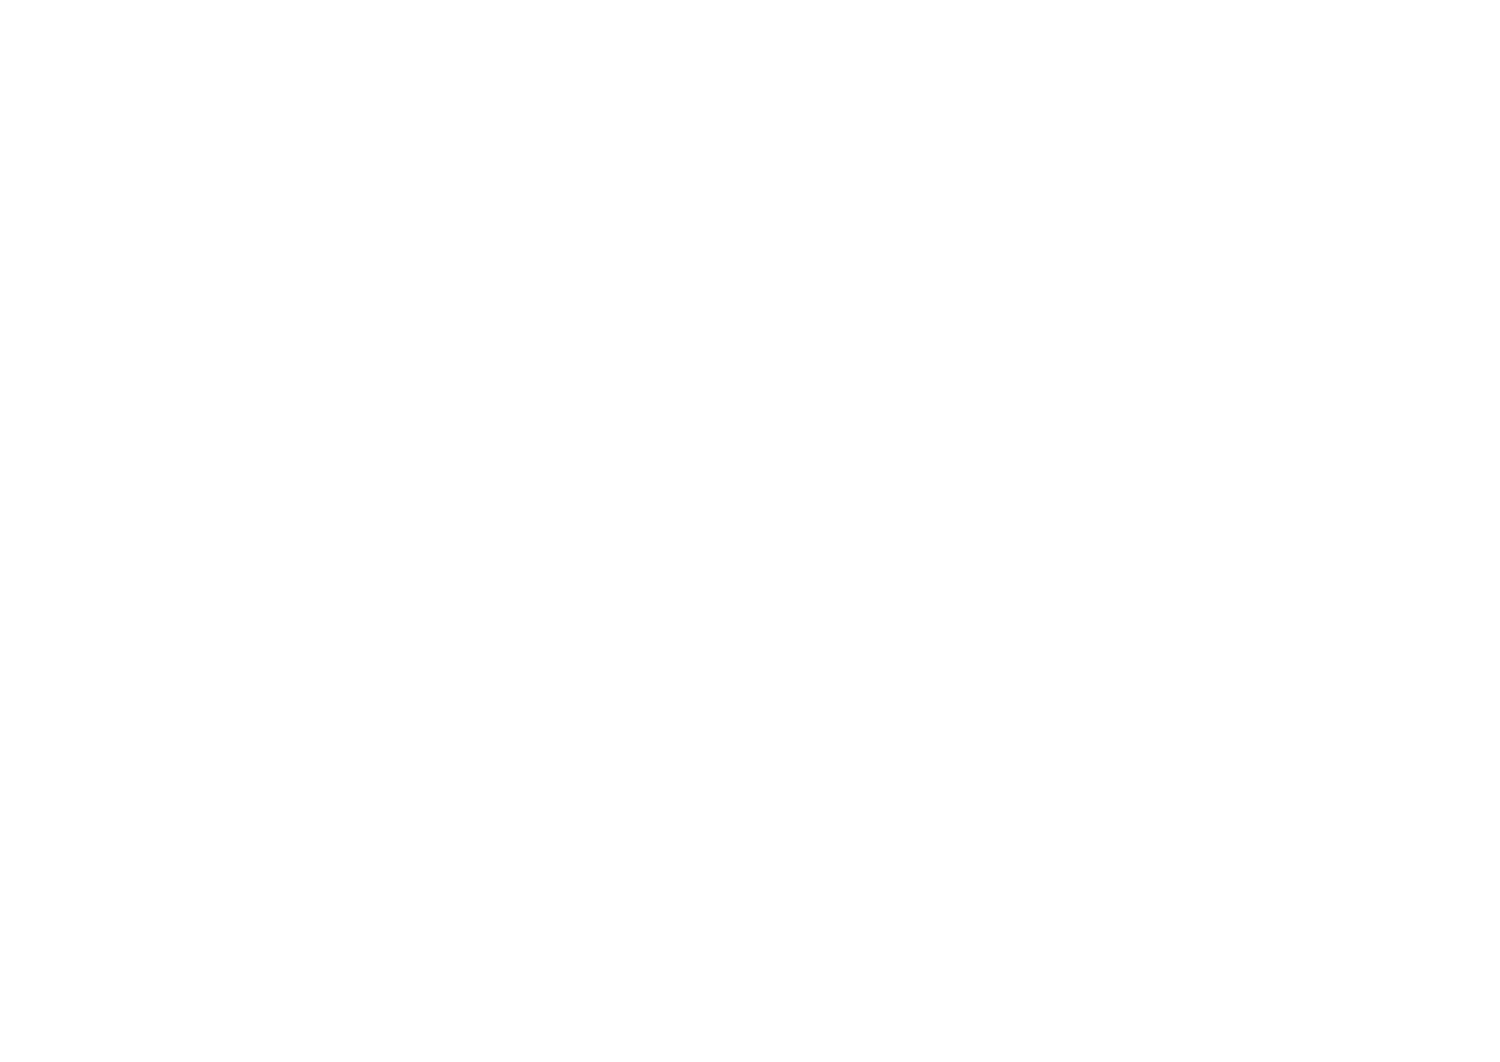 The Titusville Yoga Loft